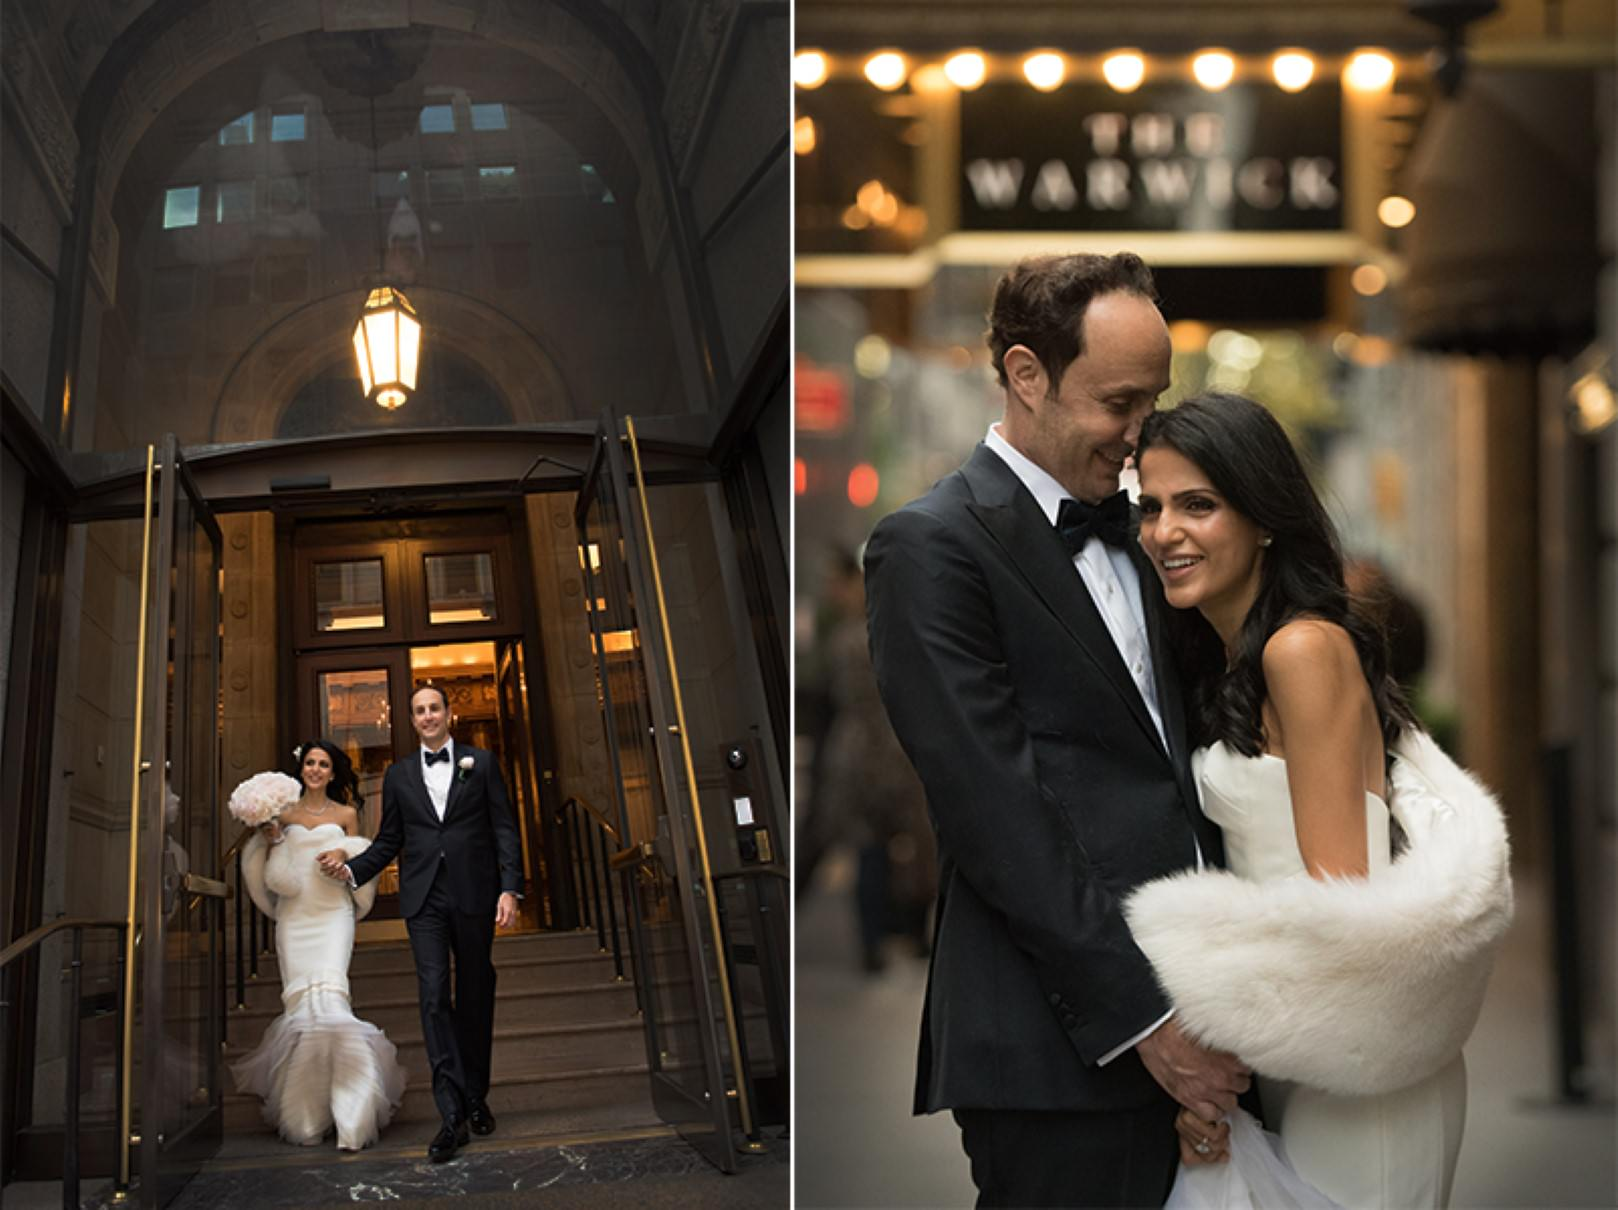 new york city wedding photography photographer photo groom bride emotional kiss walking street architectural